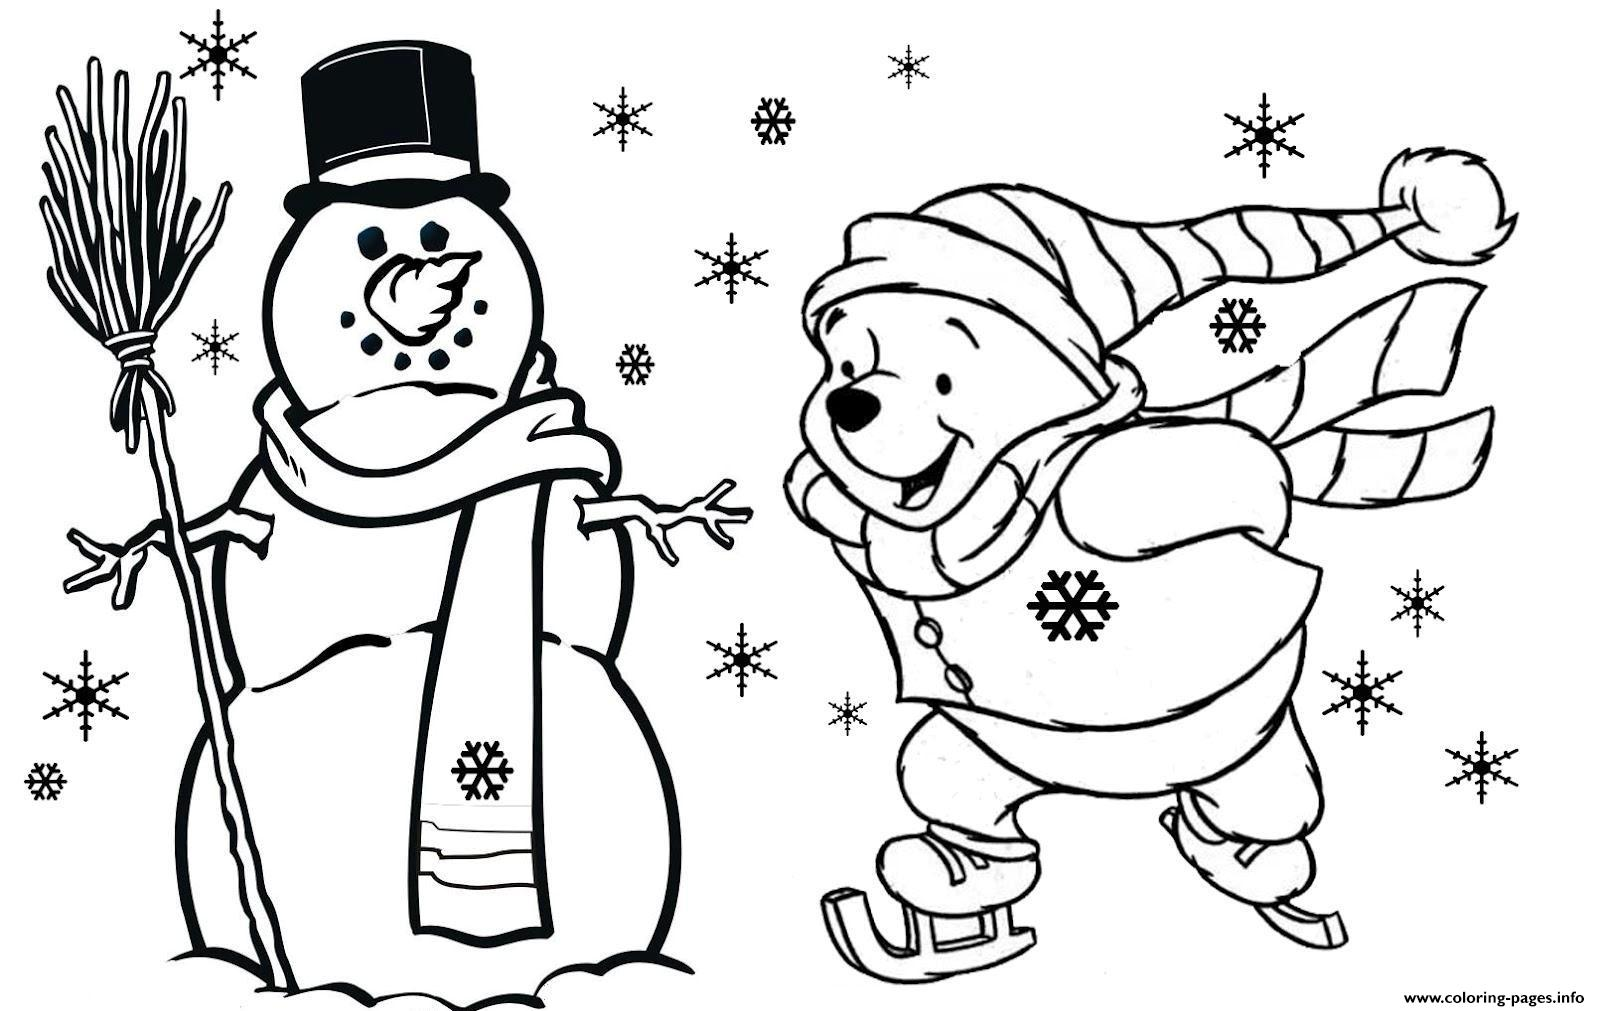 Winnie The Pooh Coloring Pages 56 | Free Printable Coloring Pages ... | 1011x1600